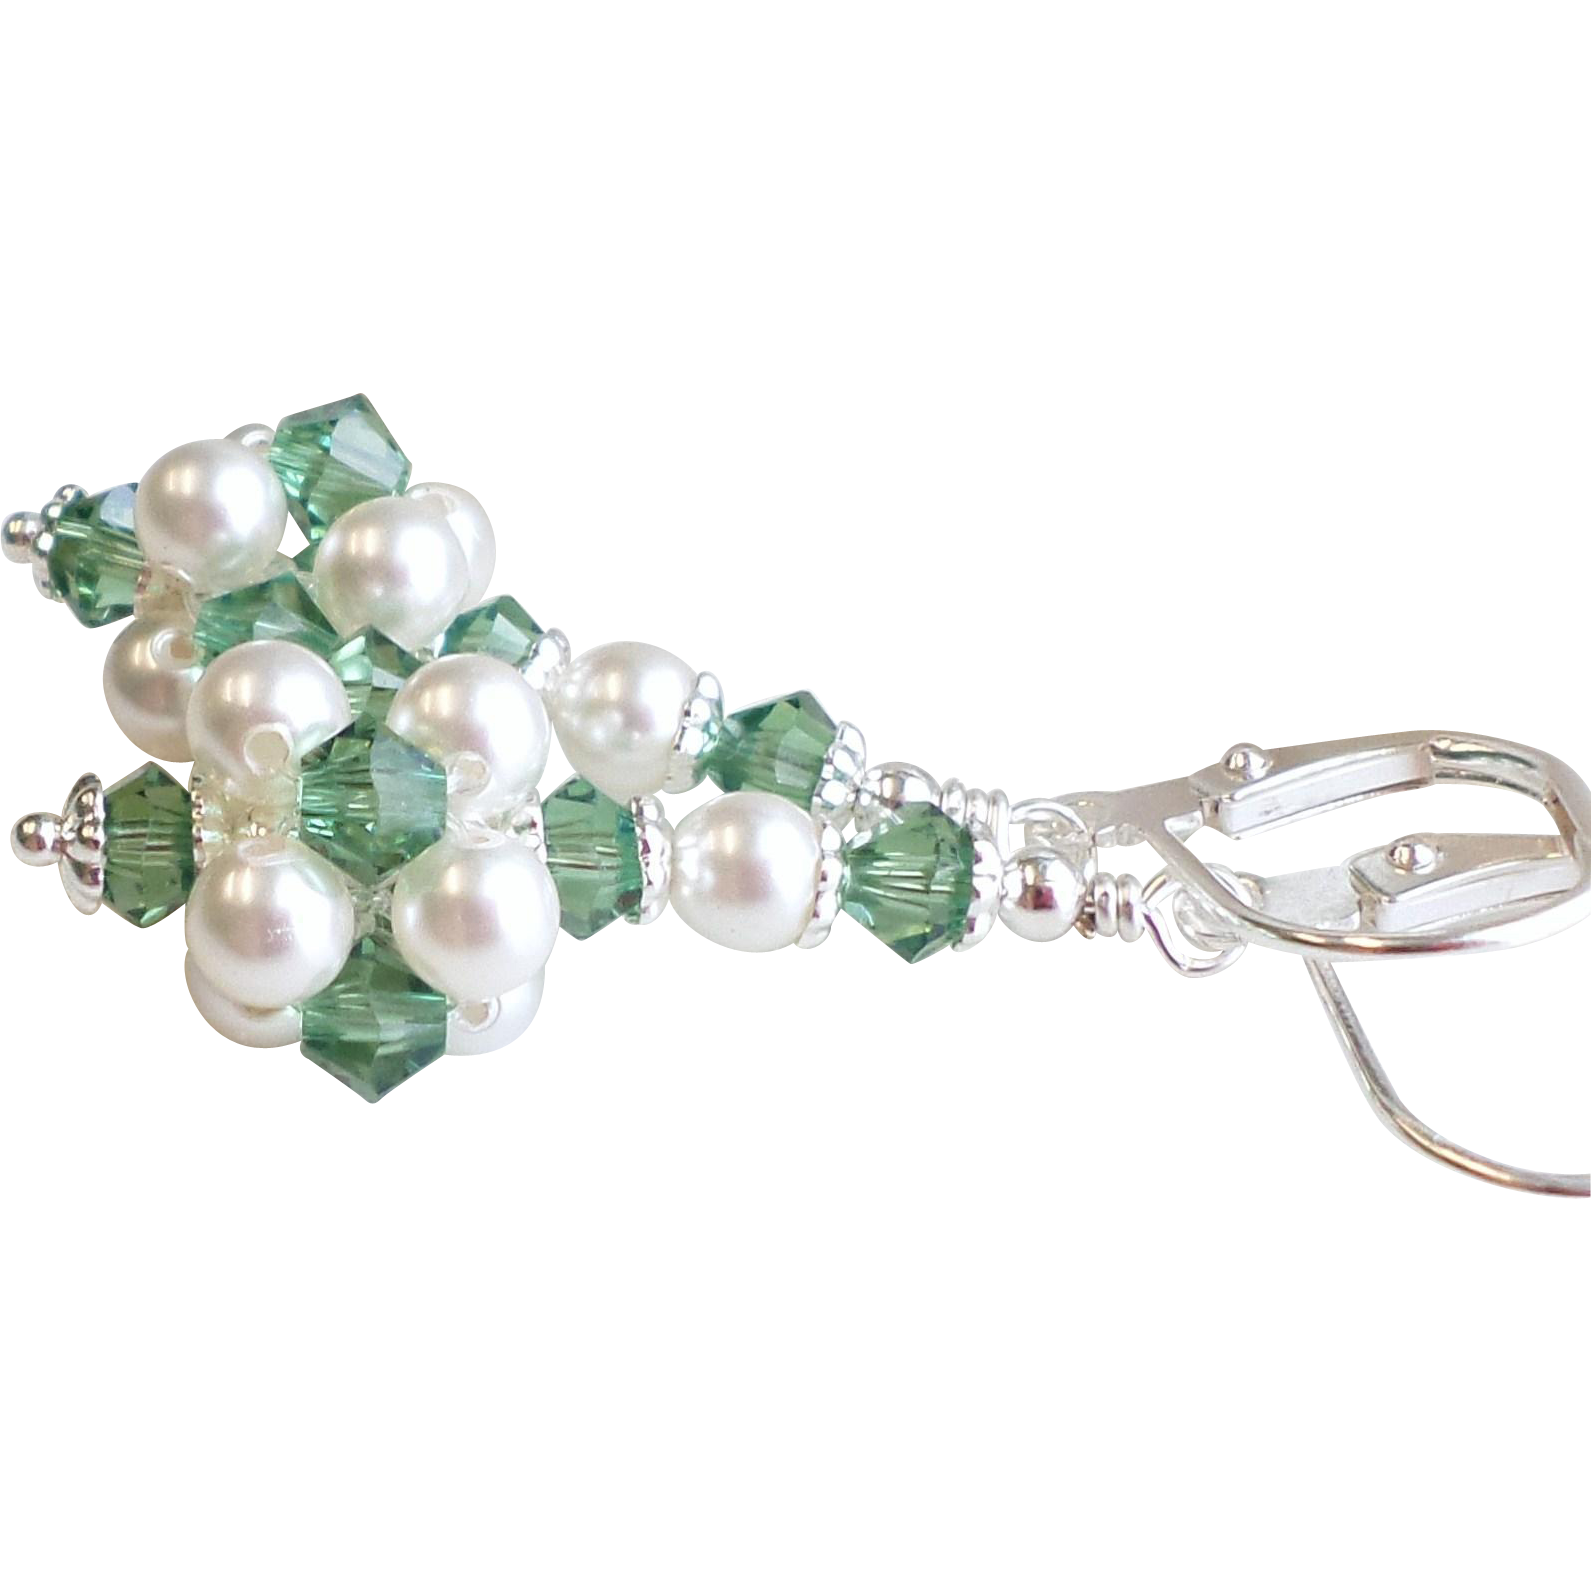 Mini Swarovski Crystal and Faux Pearl Cluster Ball Earrings In Green and White